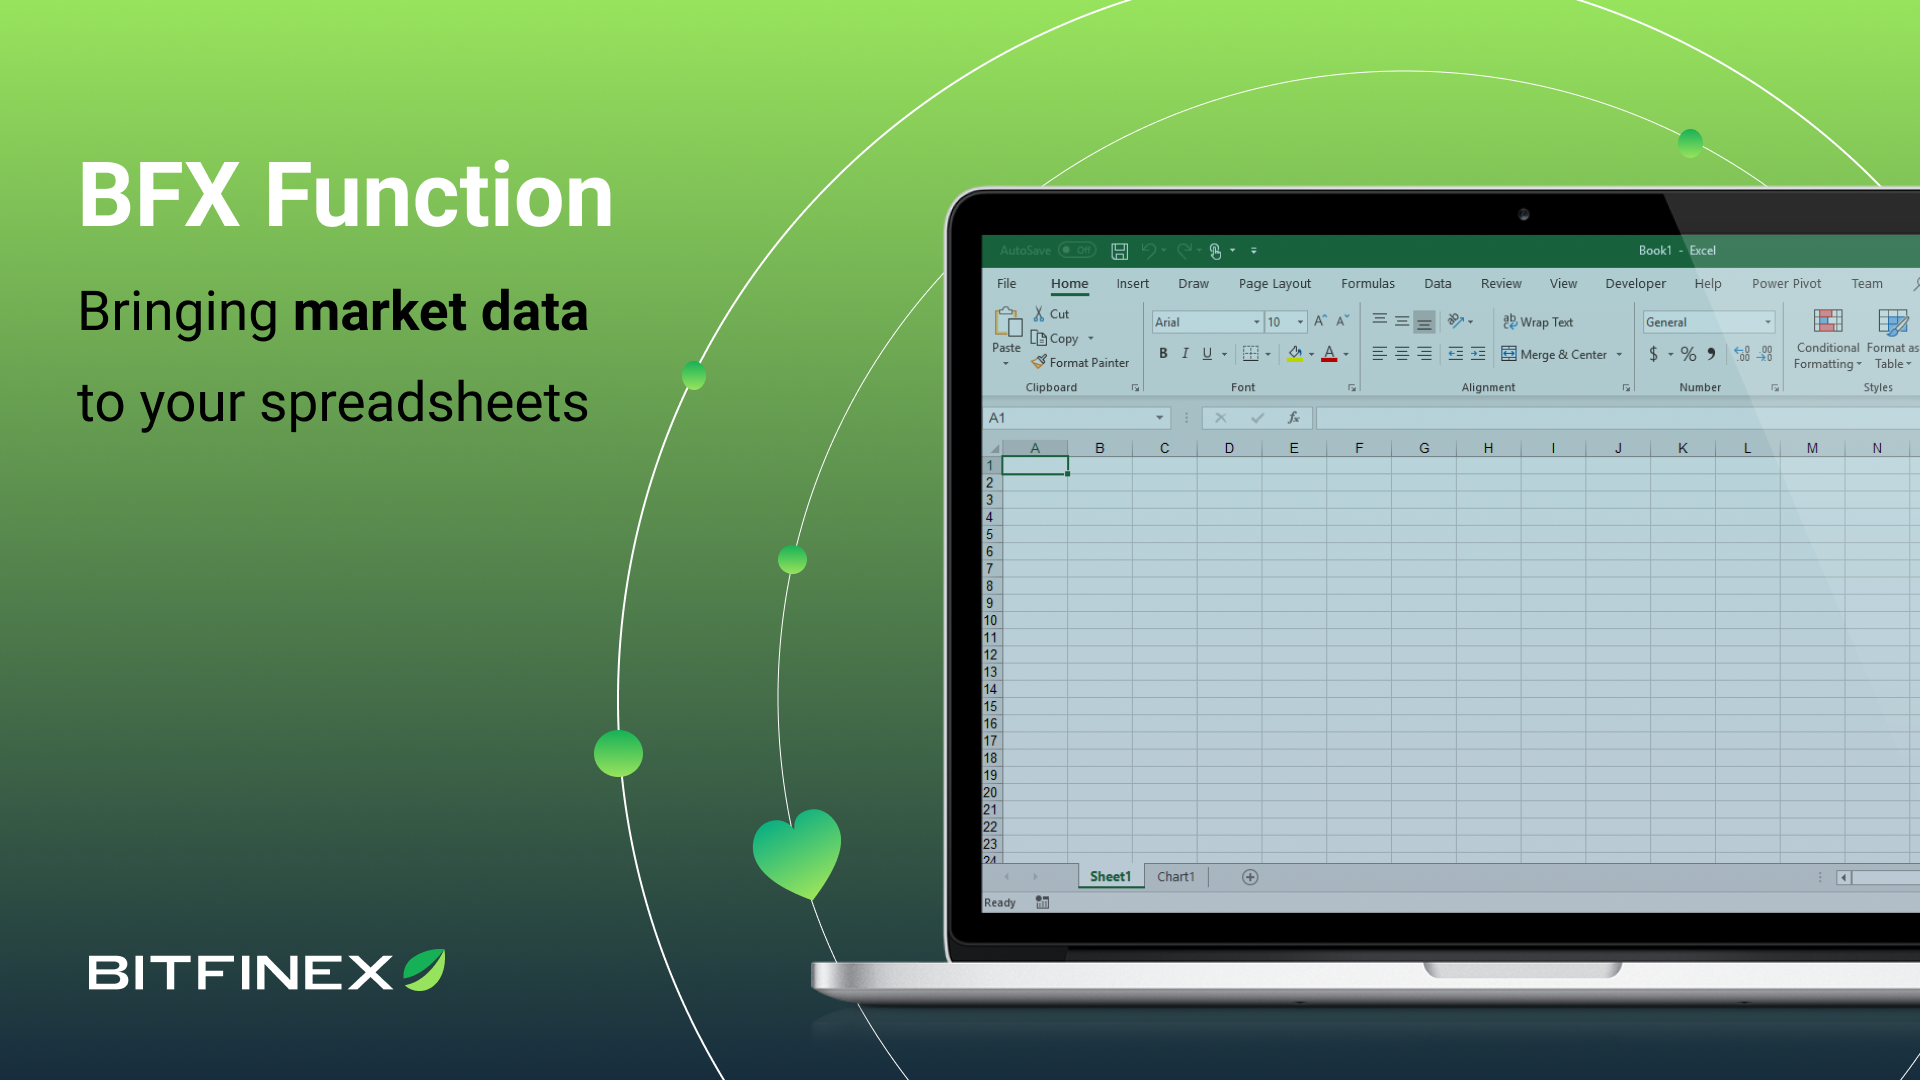 BFX Function – Bringing market data to your spreadsheets